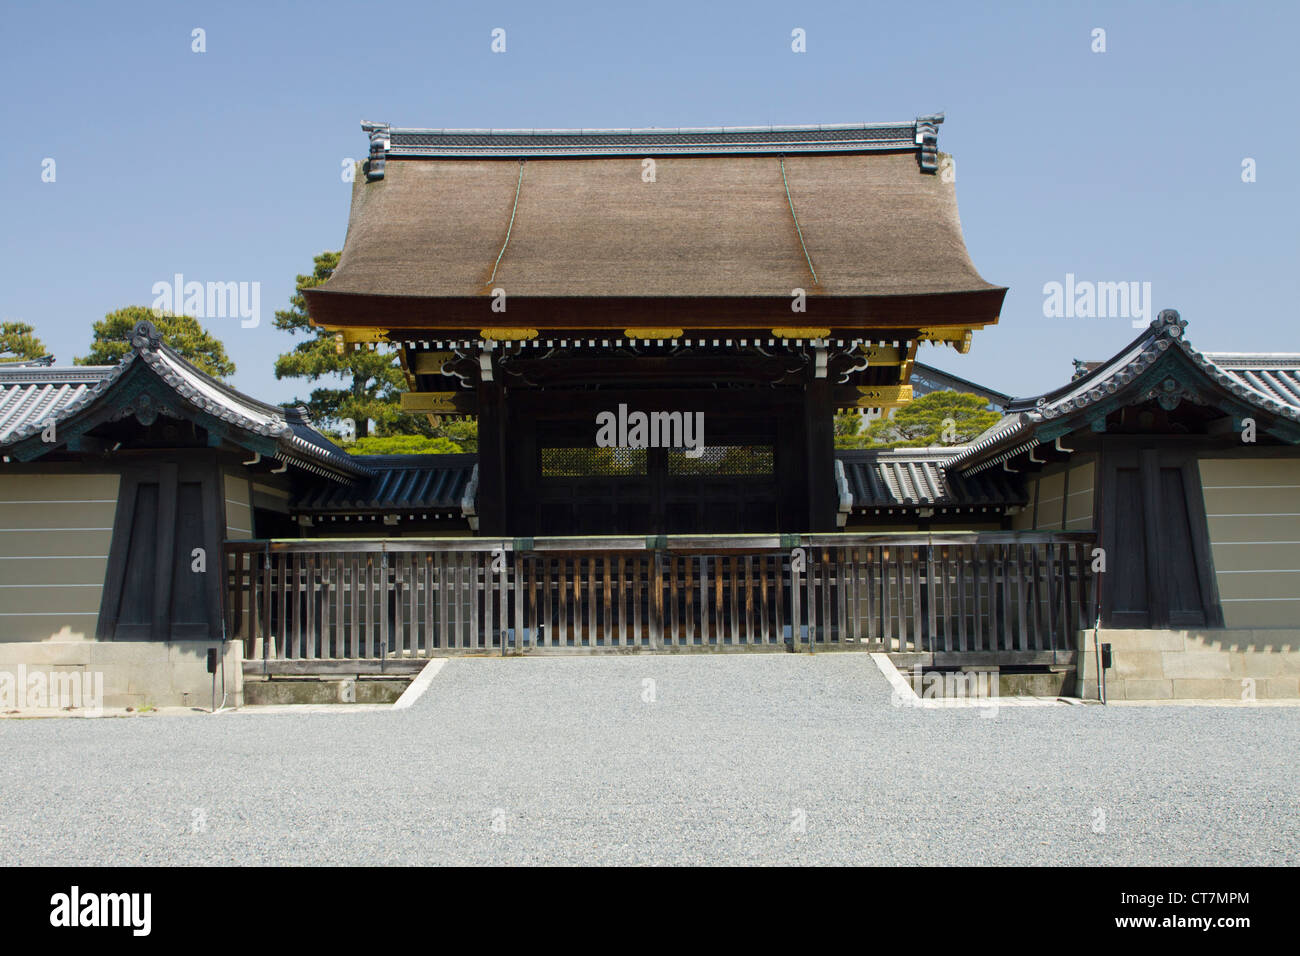 Part of the boundary wall of Kyoto Imperial Palace in the Kyoto Imperial Palace Park. Kyoto, Japan Stock Photo